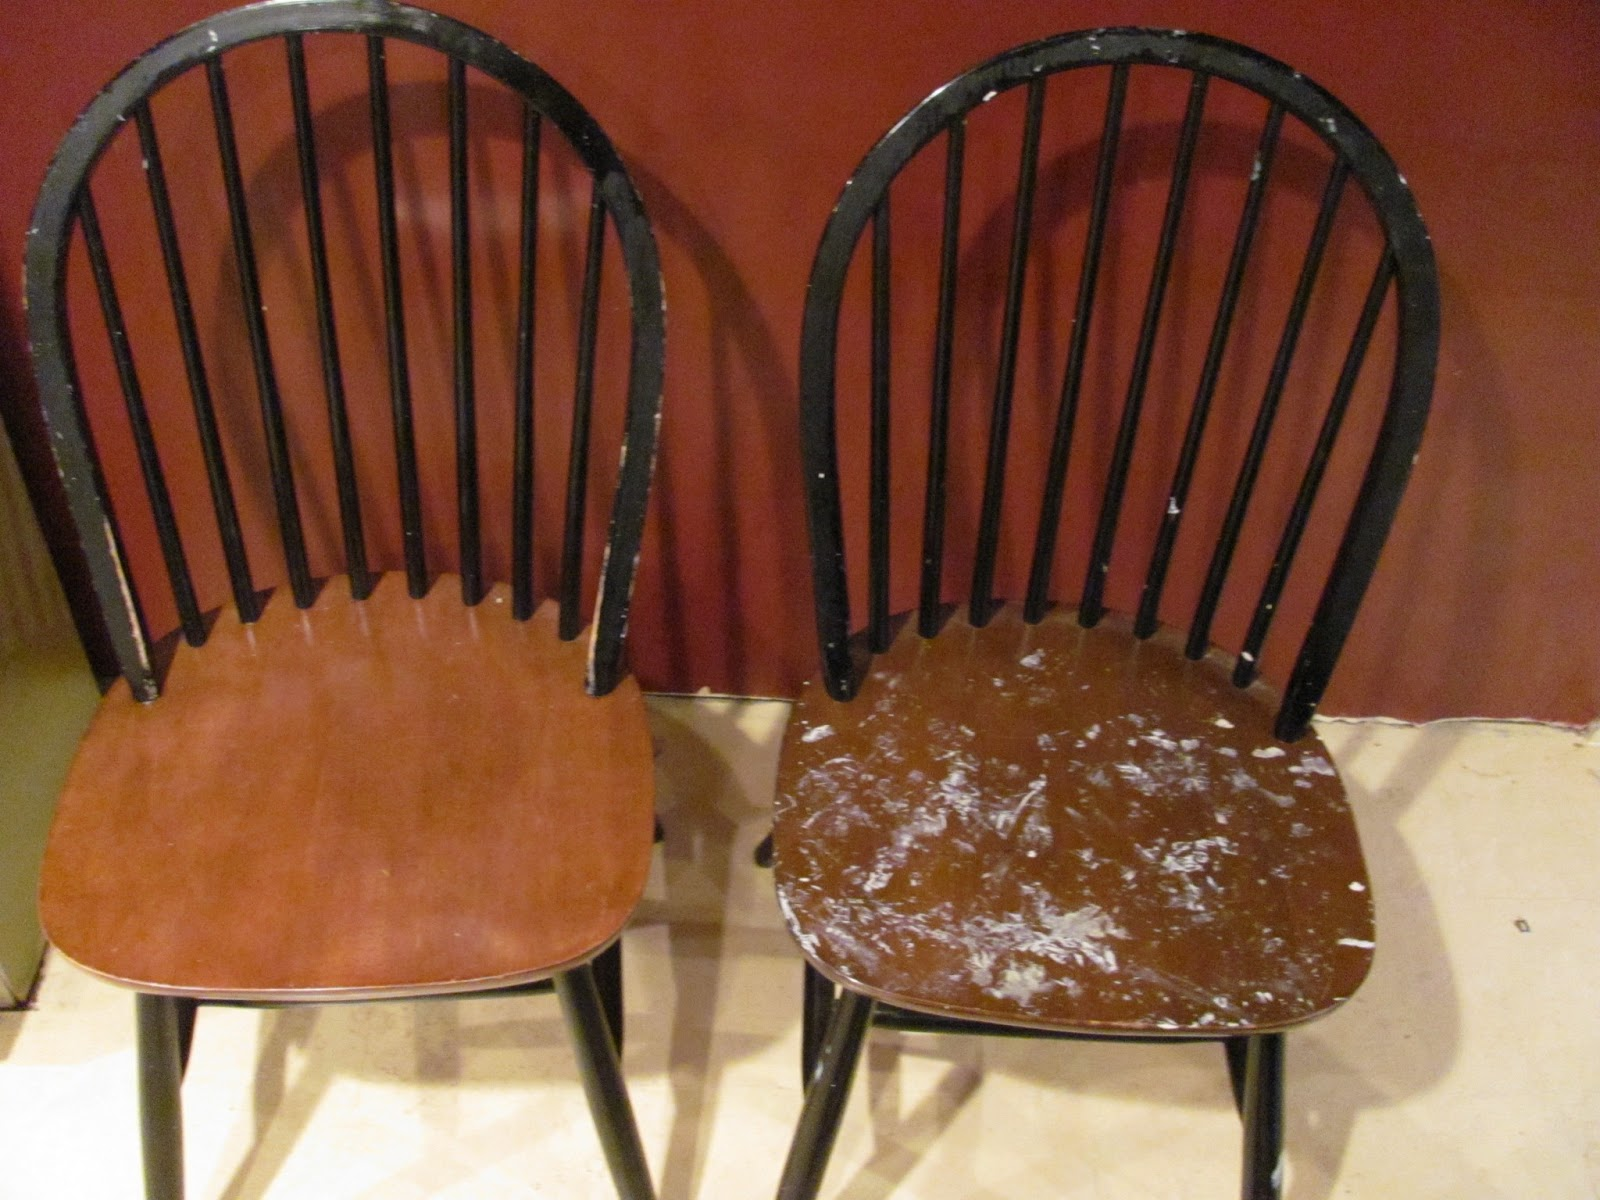 Two wooden chairs on display before being sold. One chair is covered with white paint spots